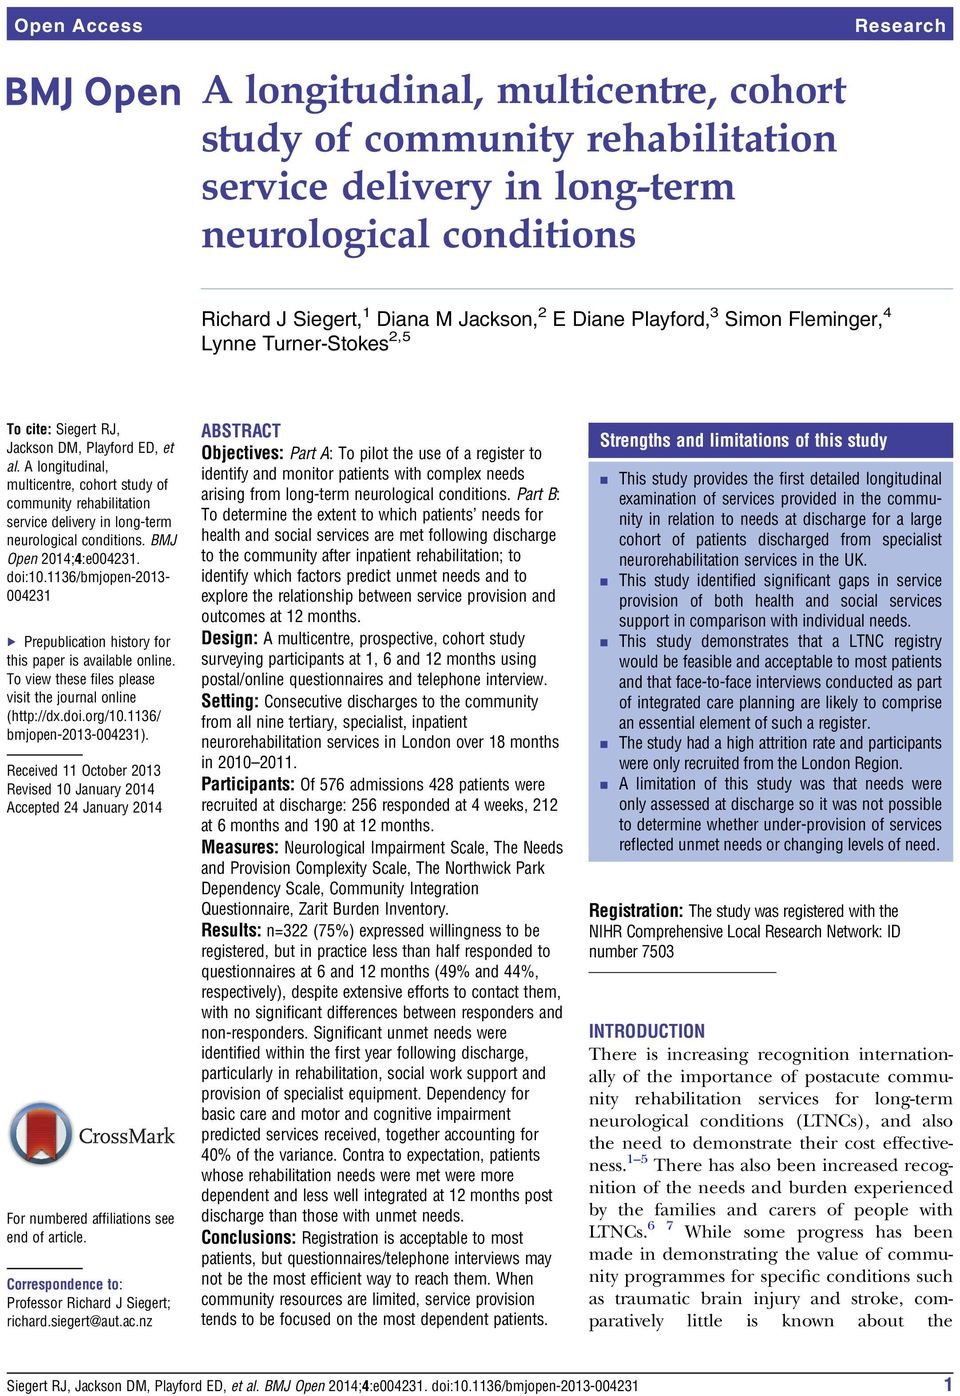 A longitudinal, multicentre, cohort study of community rehabilitation service delivery in long-term neurological conditions. BMJ Open 2014;4:e004231. doi:10.